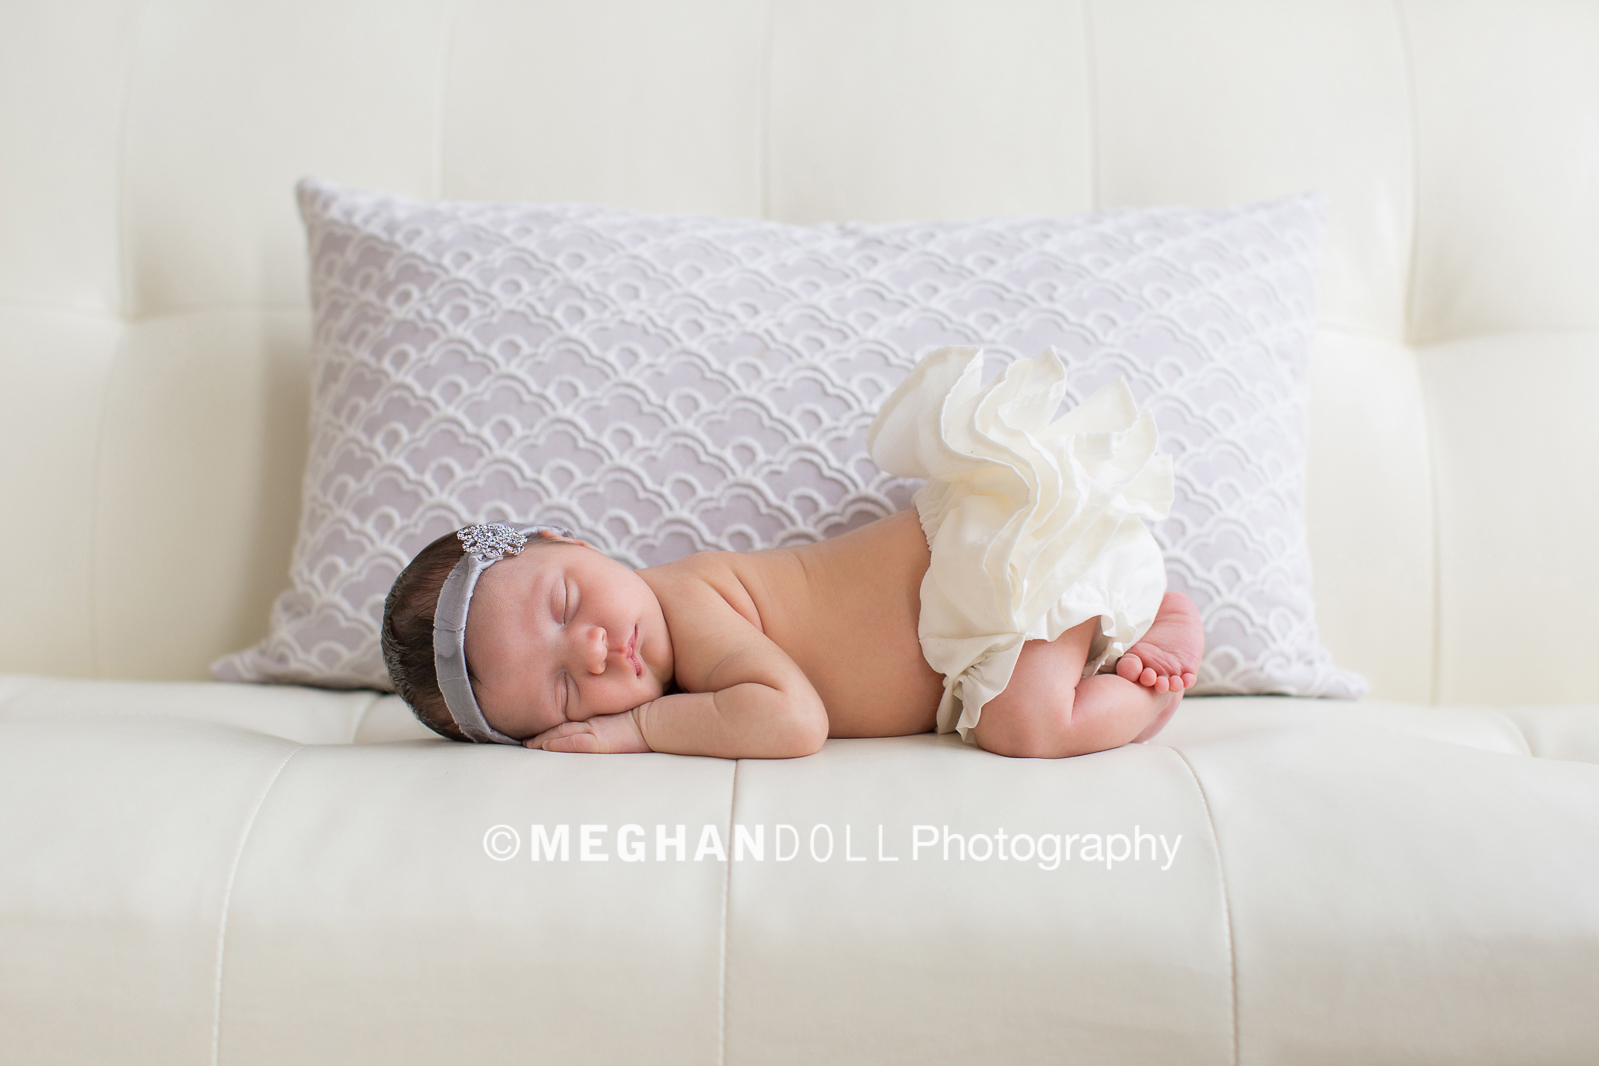 newborn baby in ivory ruffle bloomers sleeping on couch with delicate purple pillow behind her.